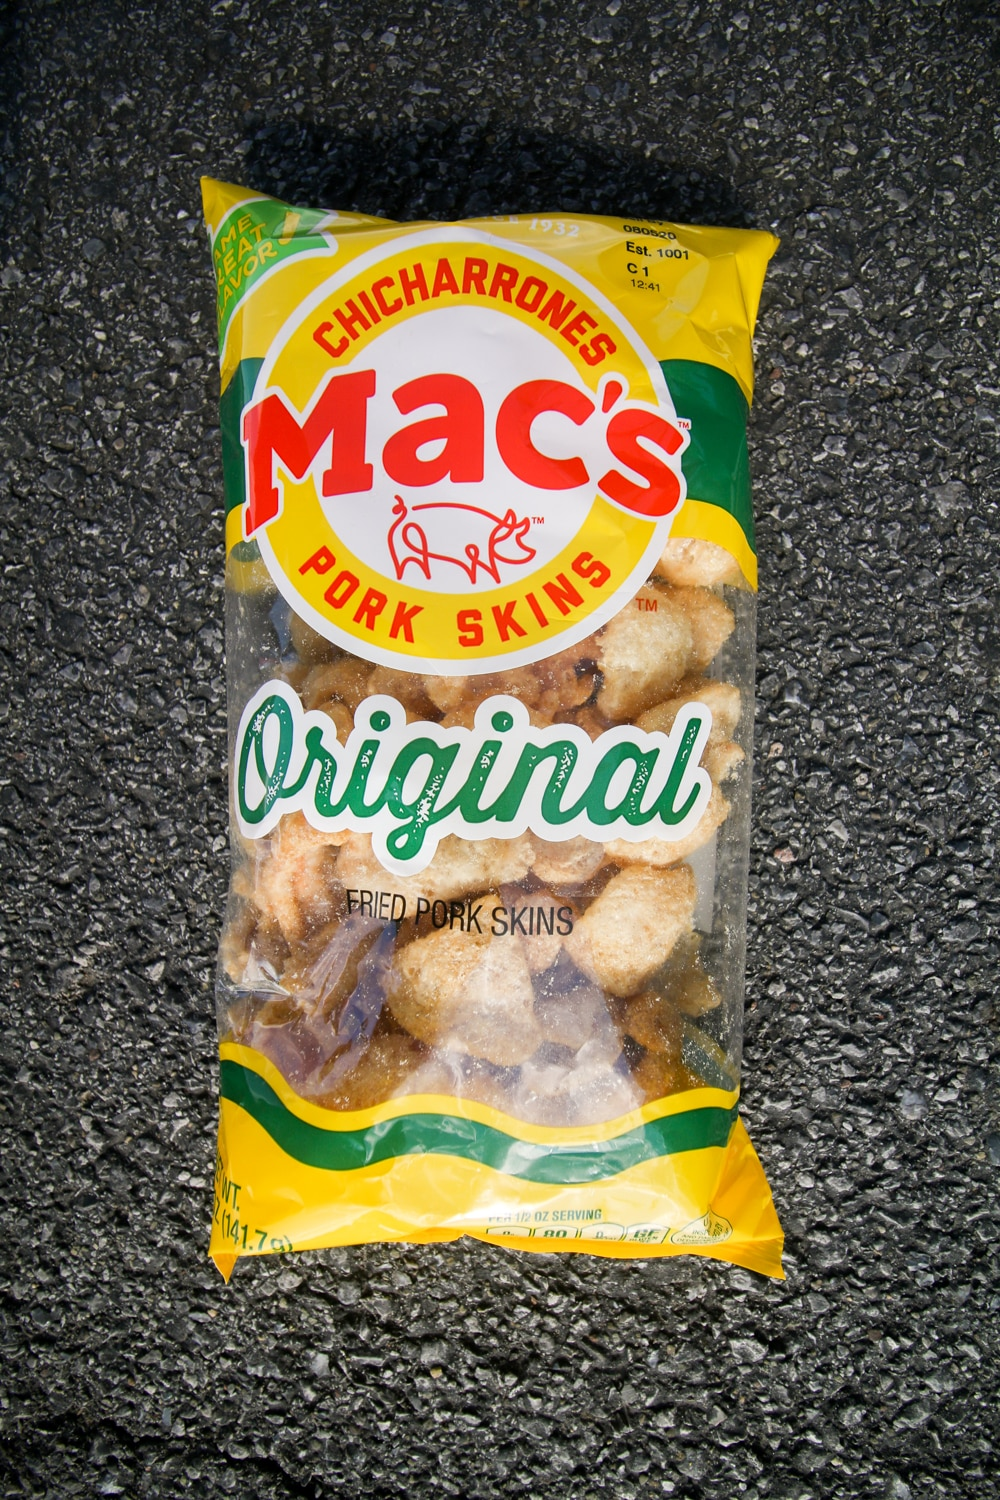 A bag of pork rinds.